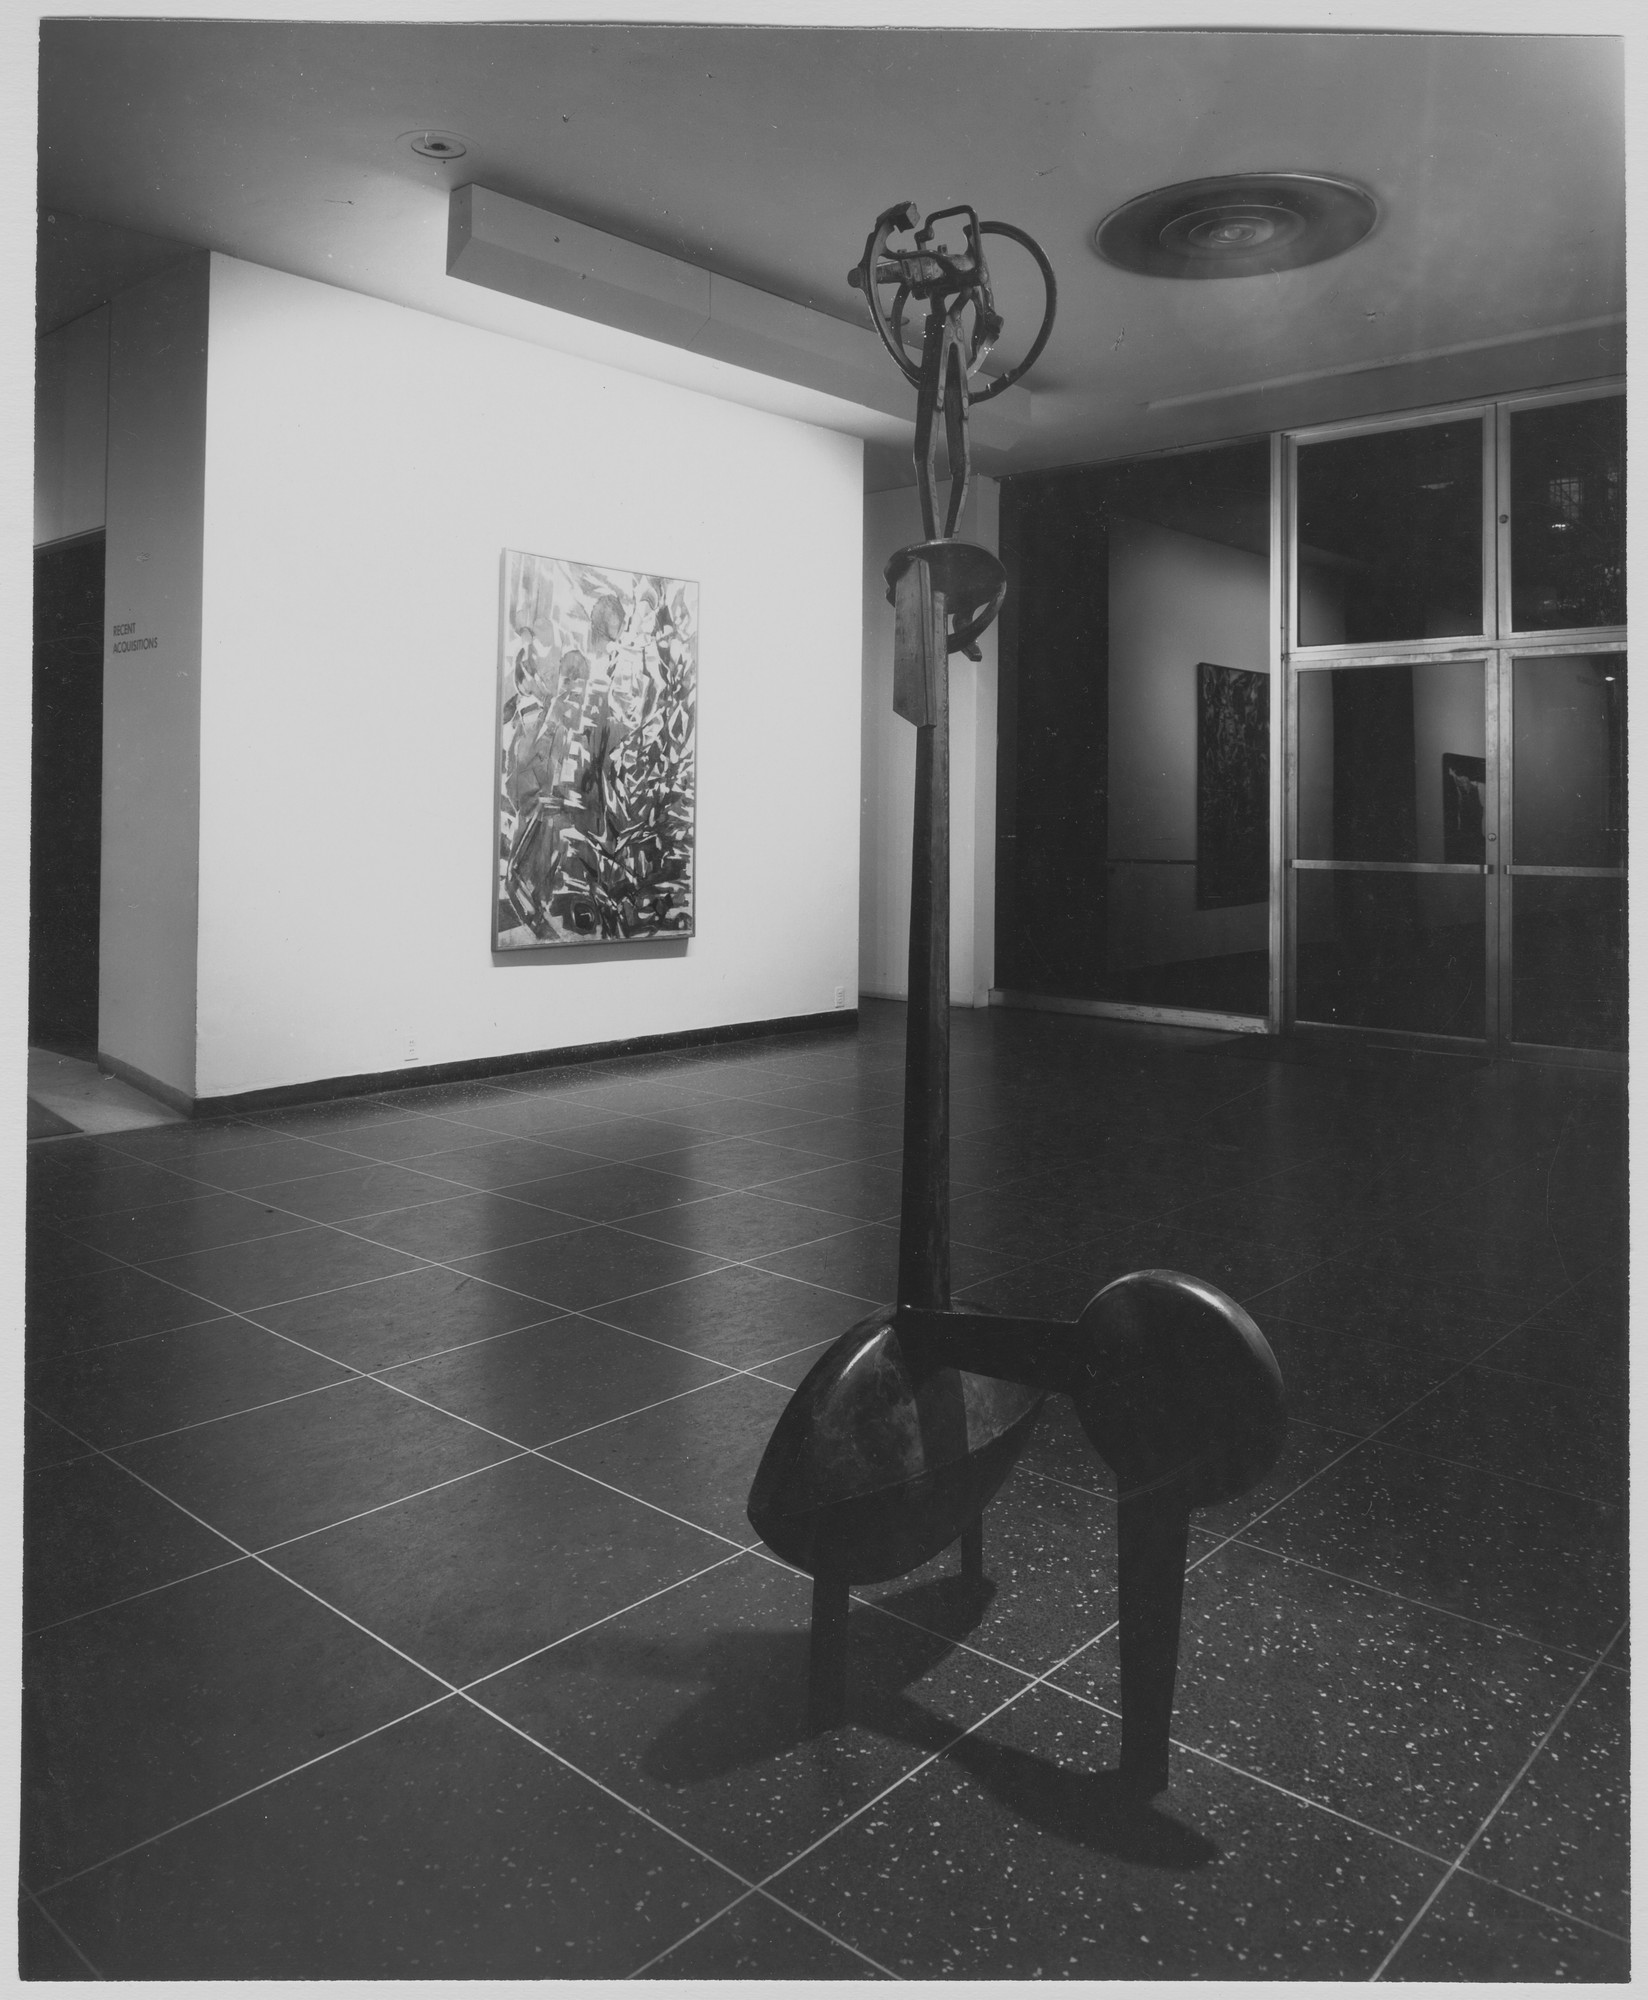 "Installation view of the exhibition, ""Recent Acquisitions."" November 13, 1957–January 5, 1958. Photographic Archive. The Museum of Modern Art Archives, New York. IN623.1. Photograph by Soichi Sunami."